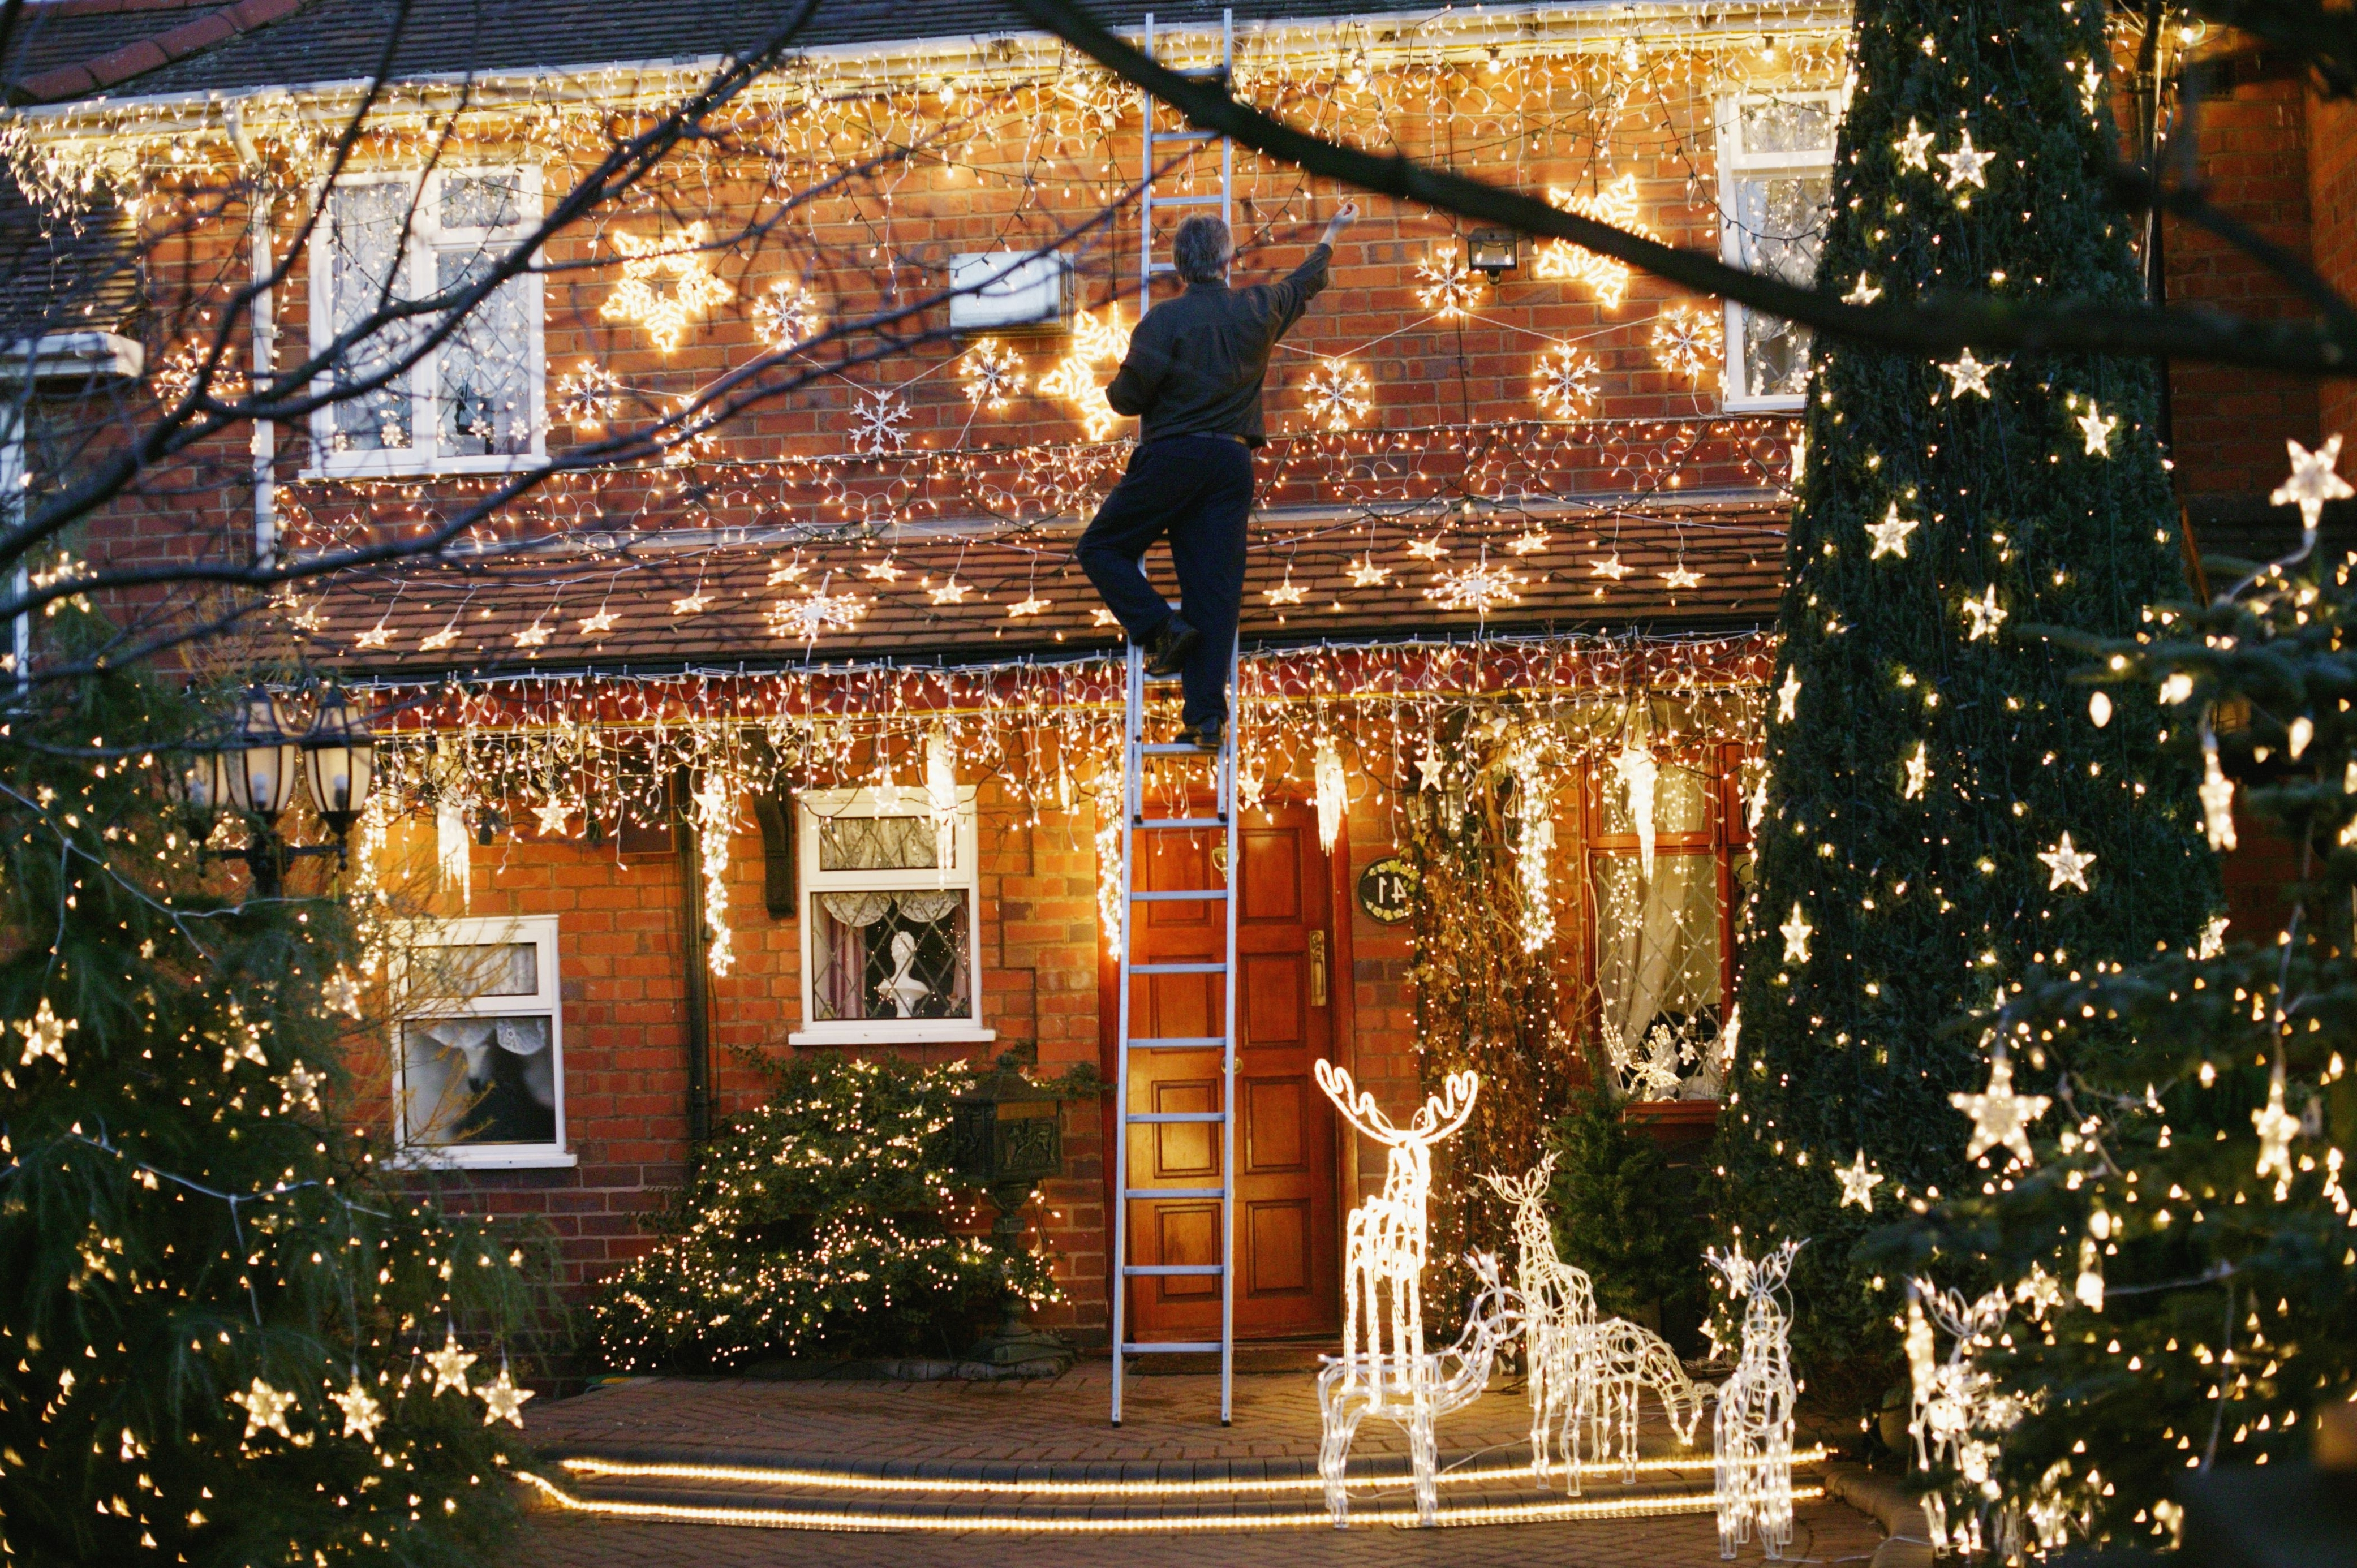 Current Hanging Outdoor Christmas Lights In Roof Throughout Learn To Hang Outdoor Christmas Lights (View 19 of 20)